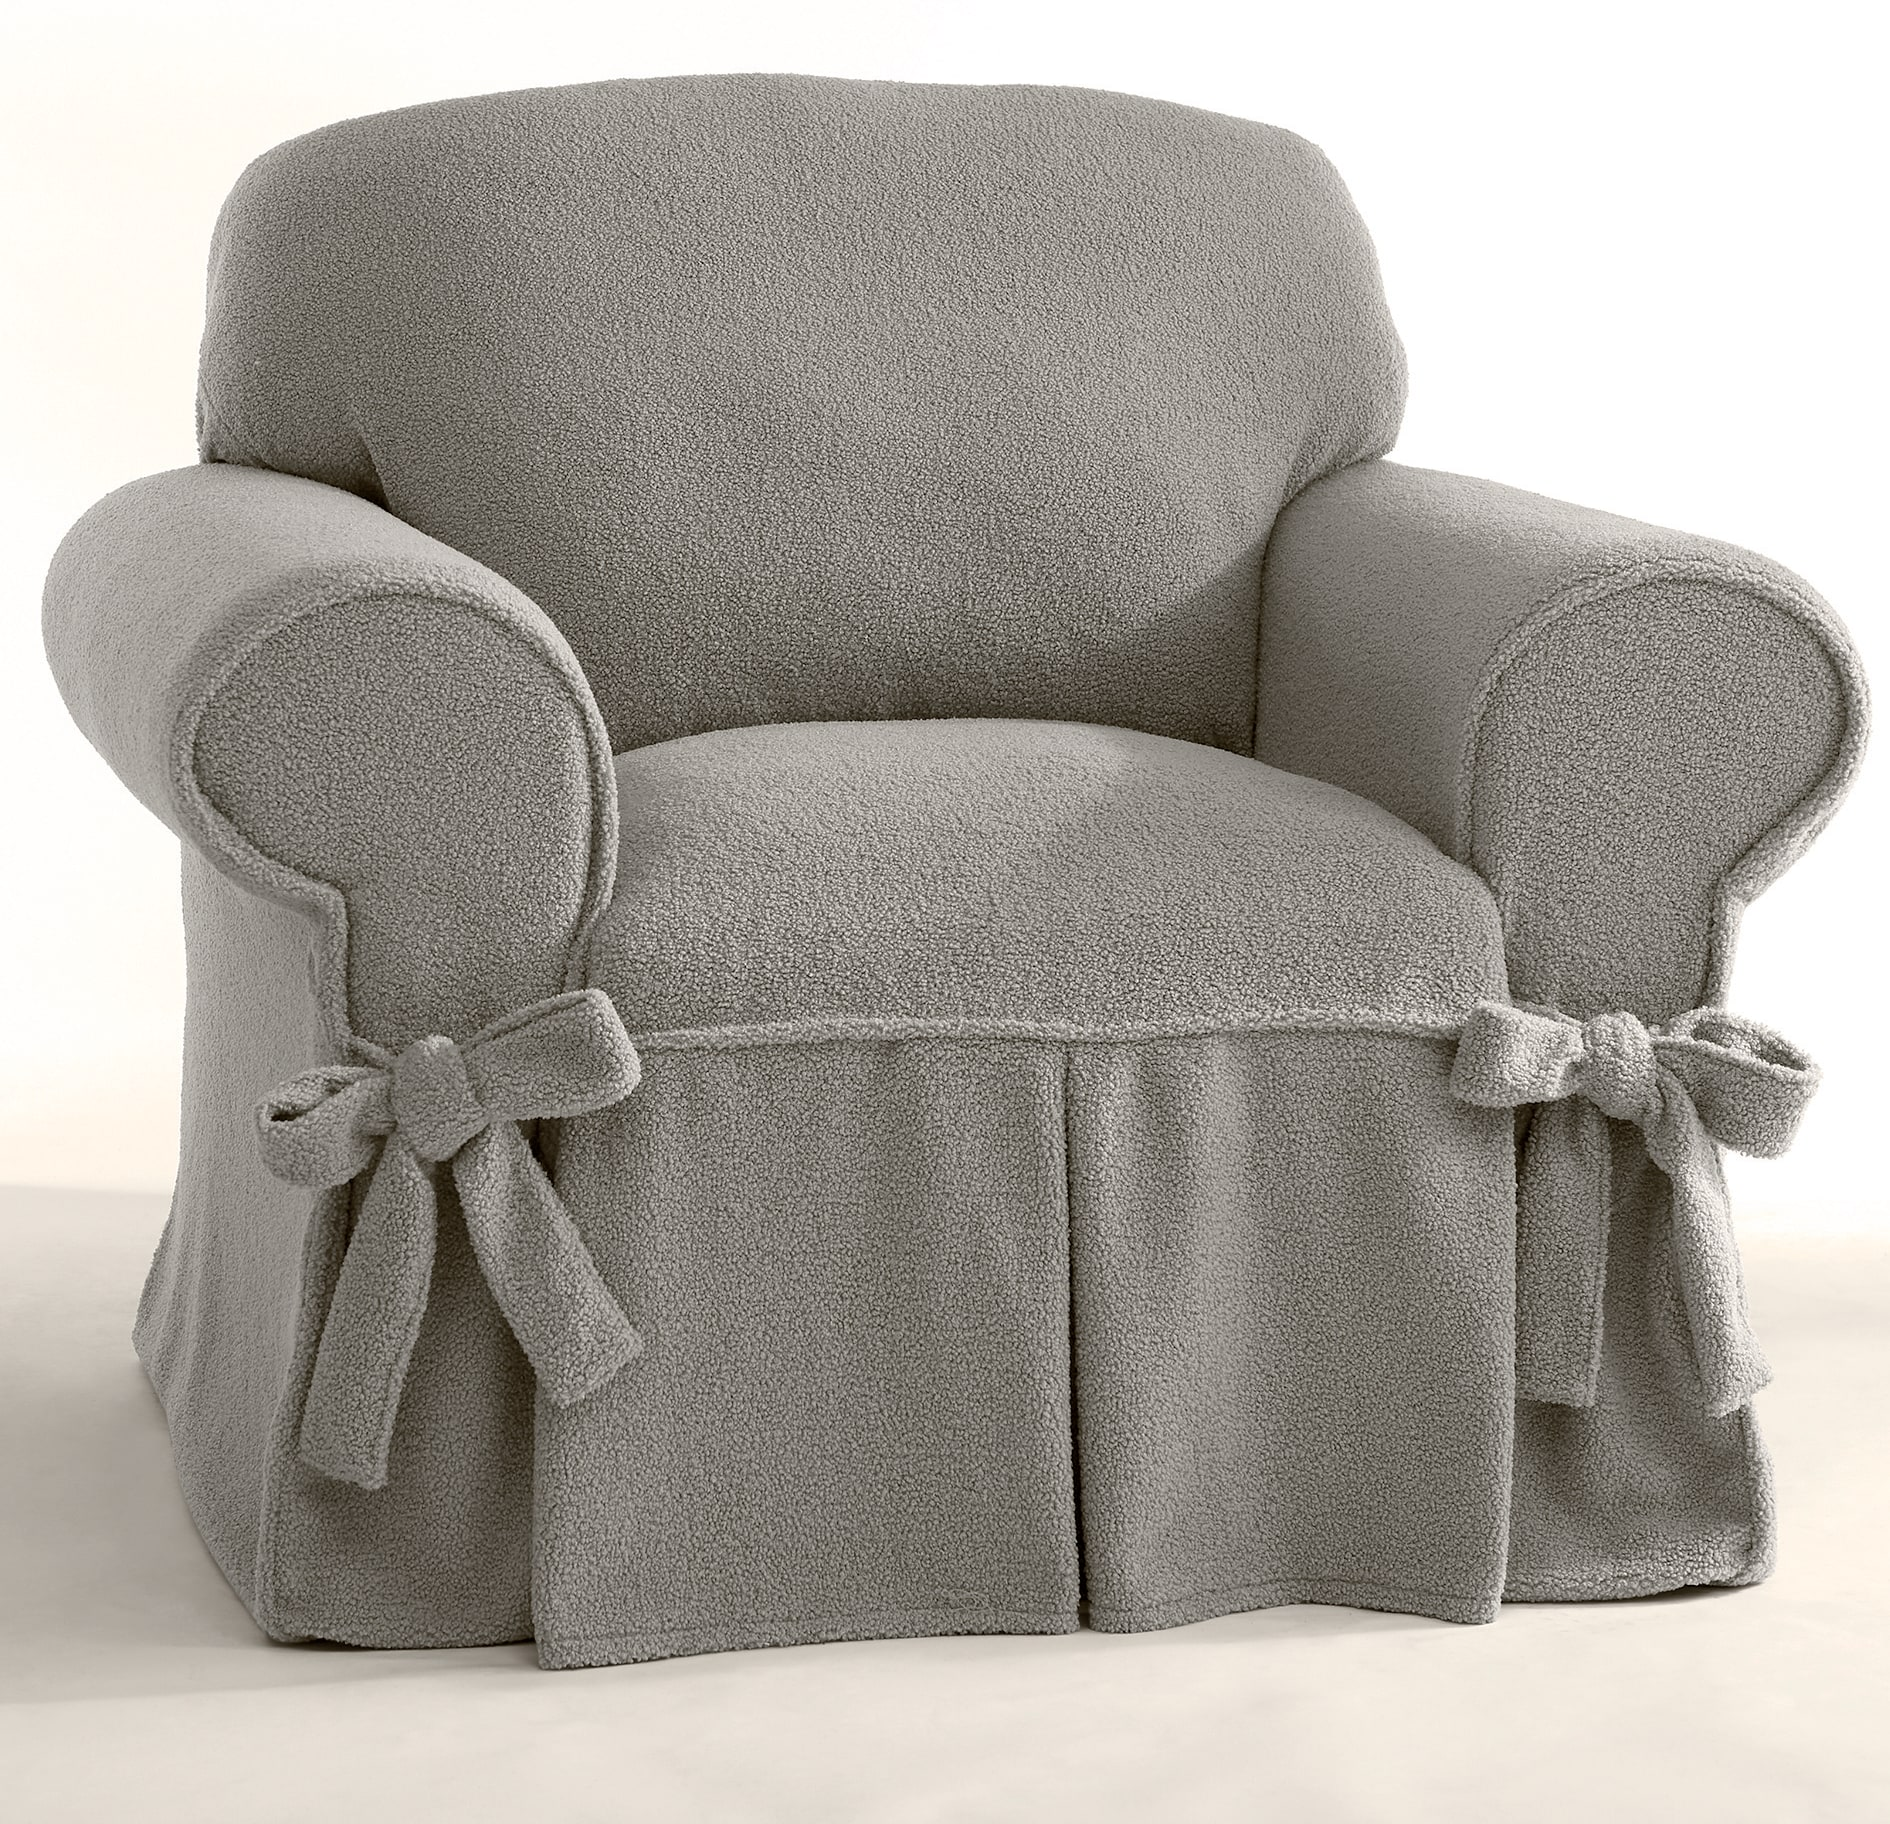 christmas chair covers ireland medical rental slipcovers sofa loveseat country door boucle and pillow cover